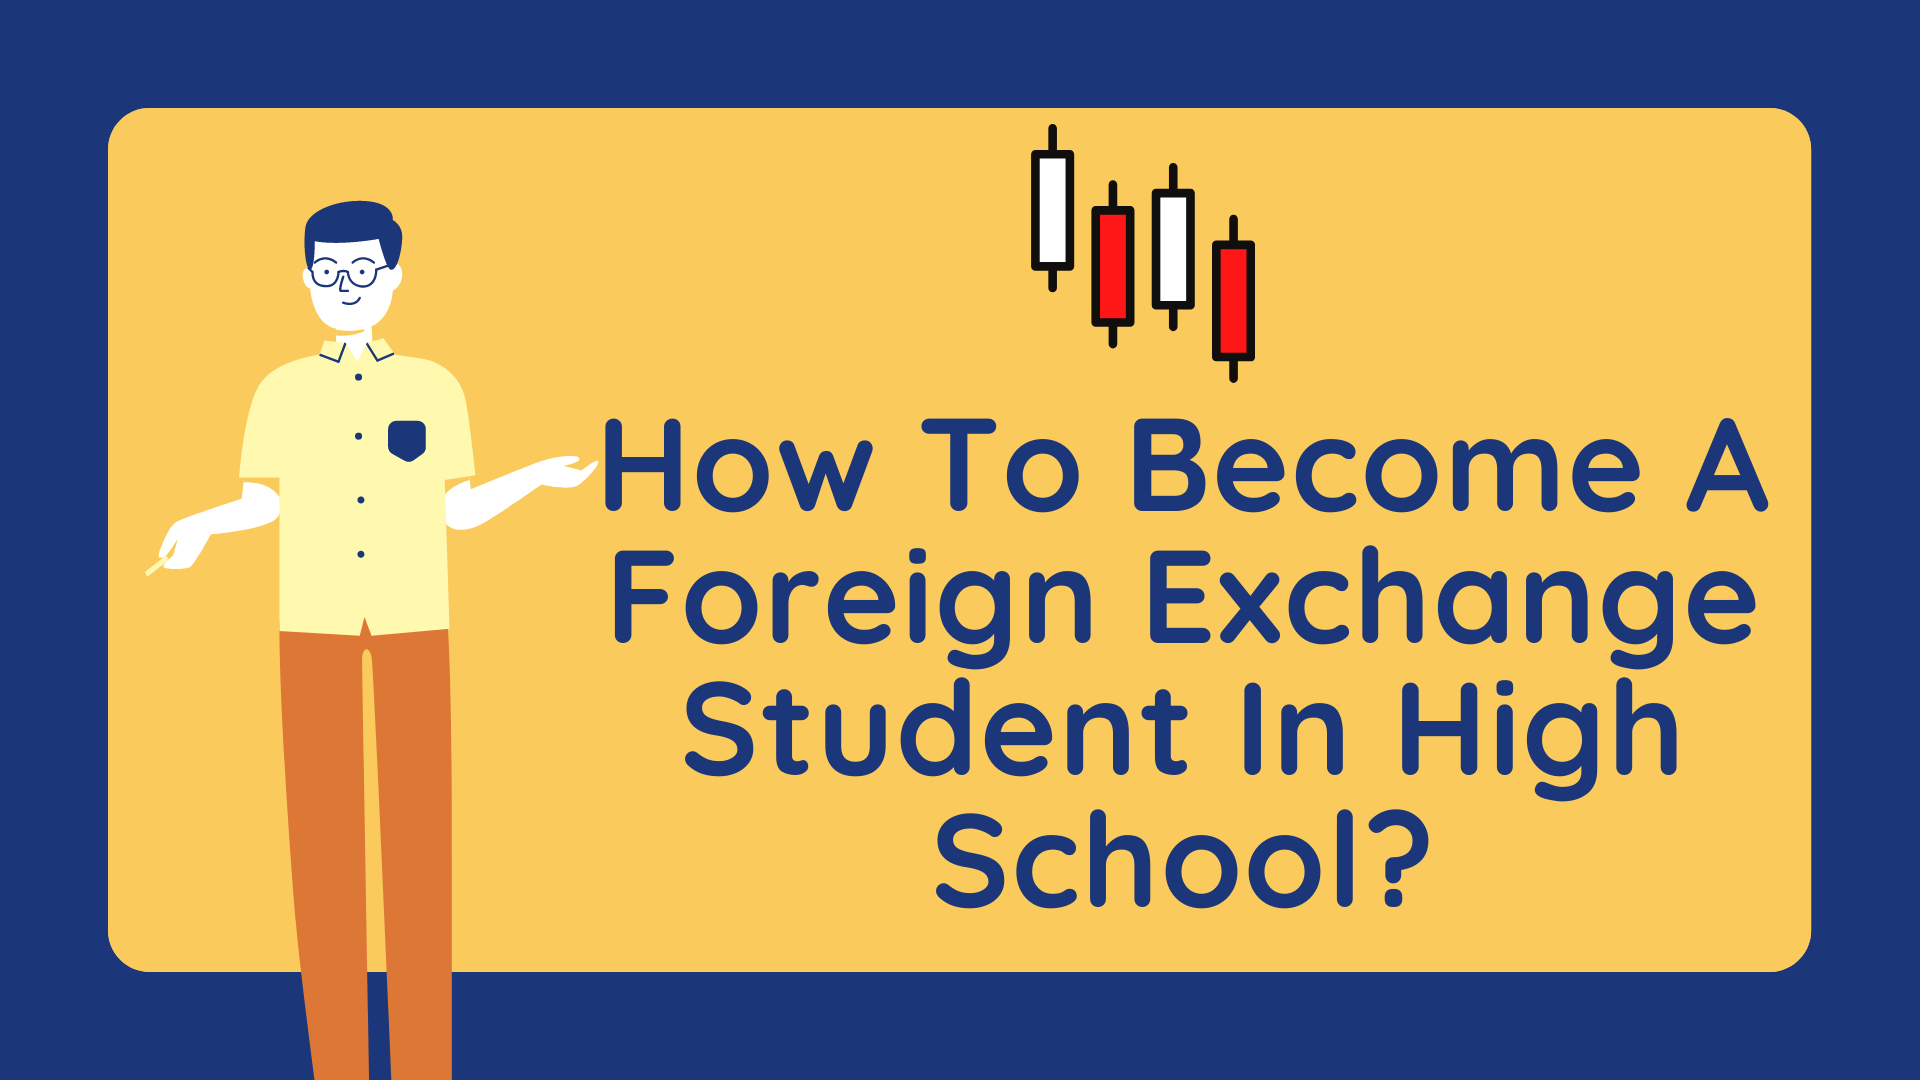 How To Become A Foreign Exchange Student In High School